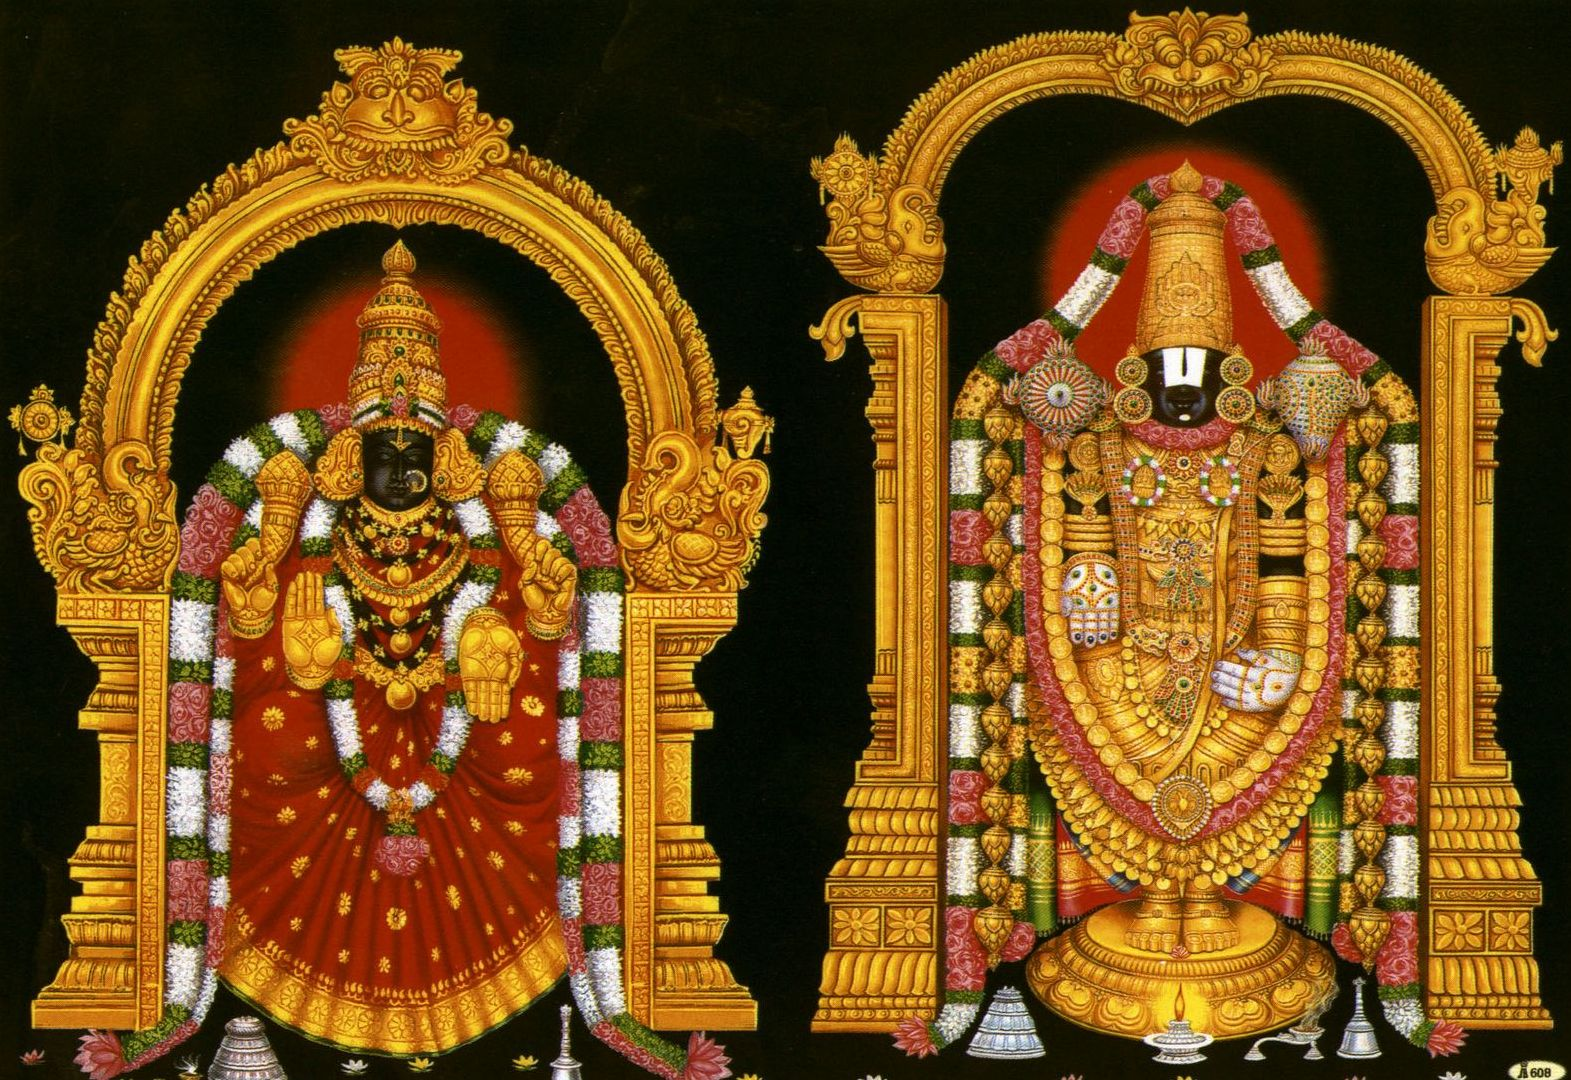 Hd Wallpapers Hindu God Free Images Photo Download In